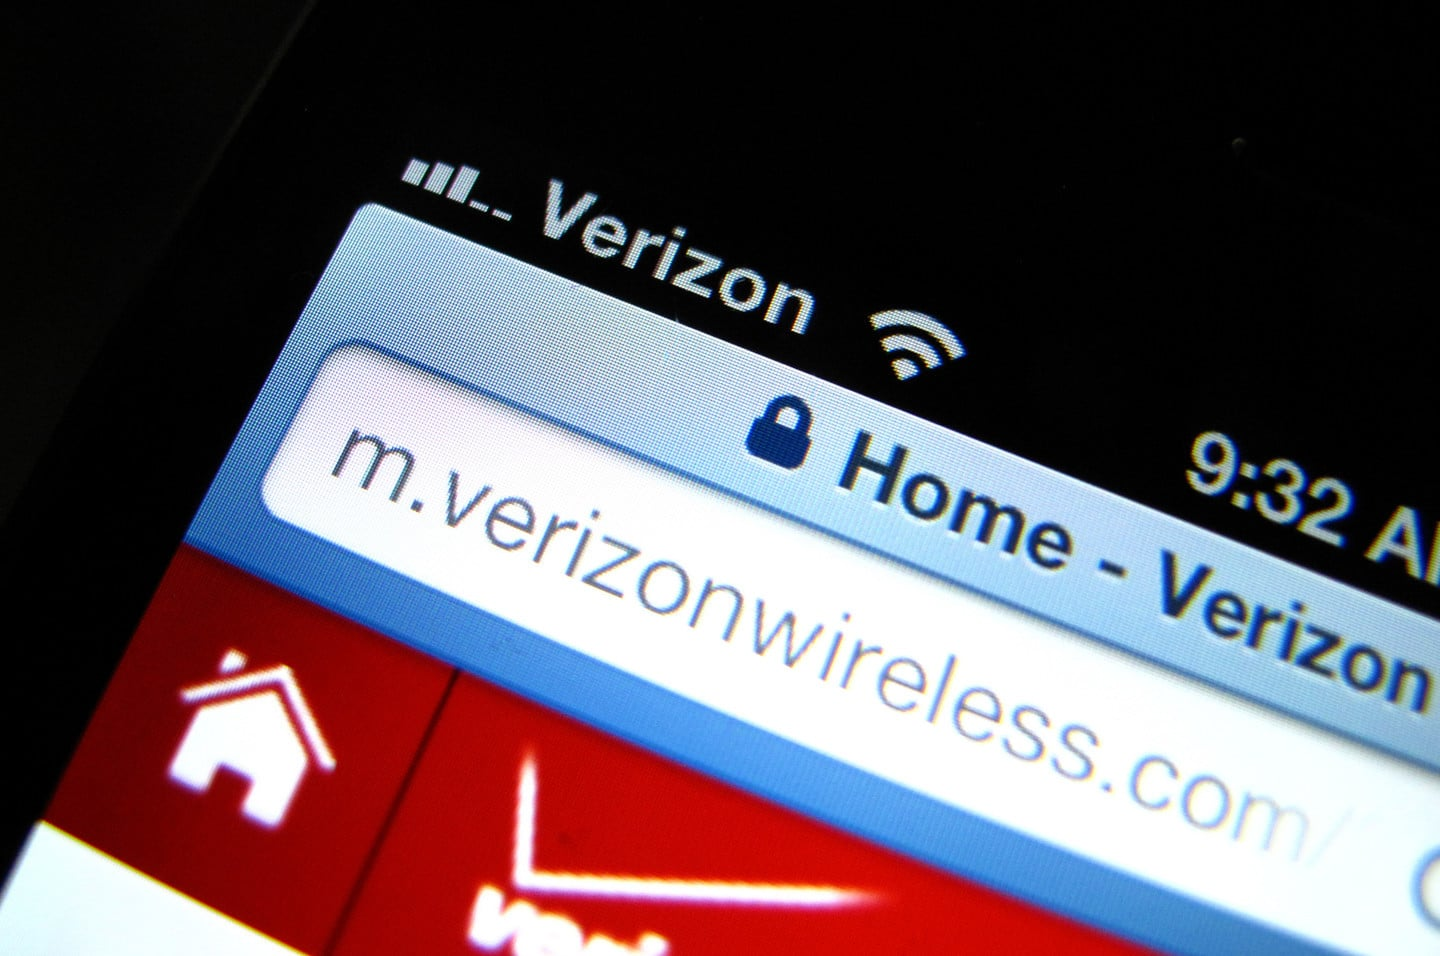 Verizon Throttles Netflix, YouTube During Networks Tests